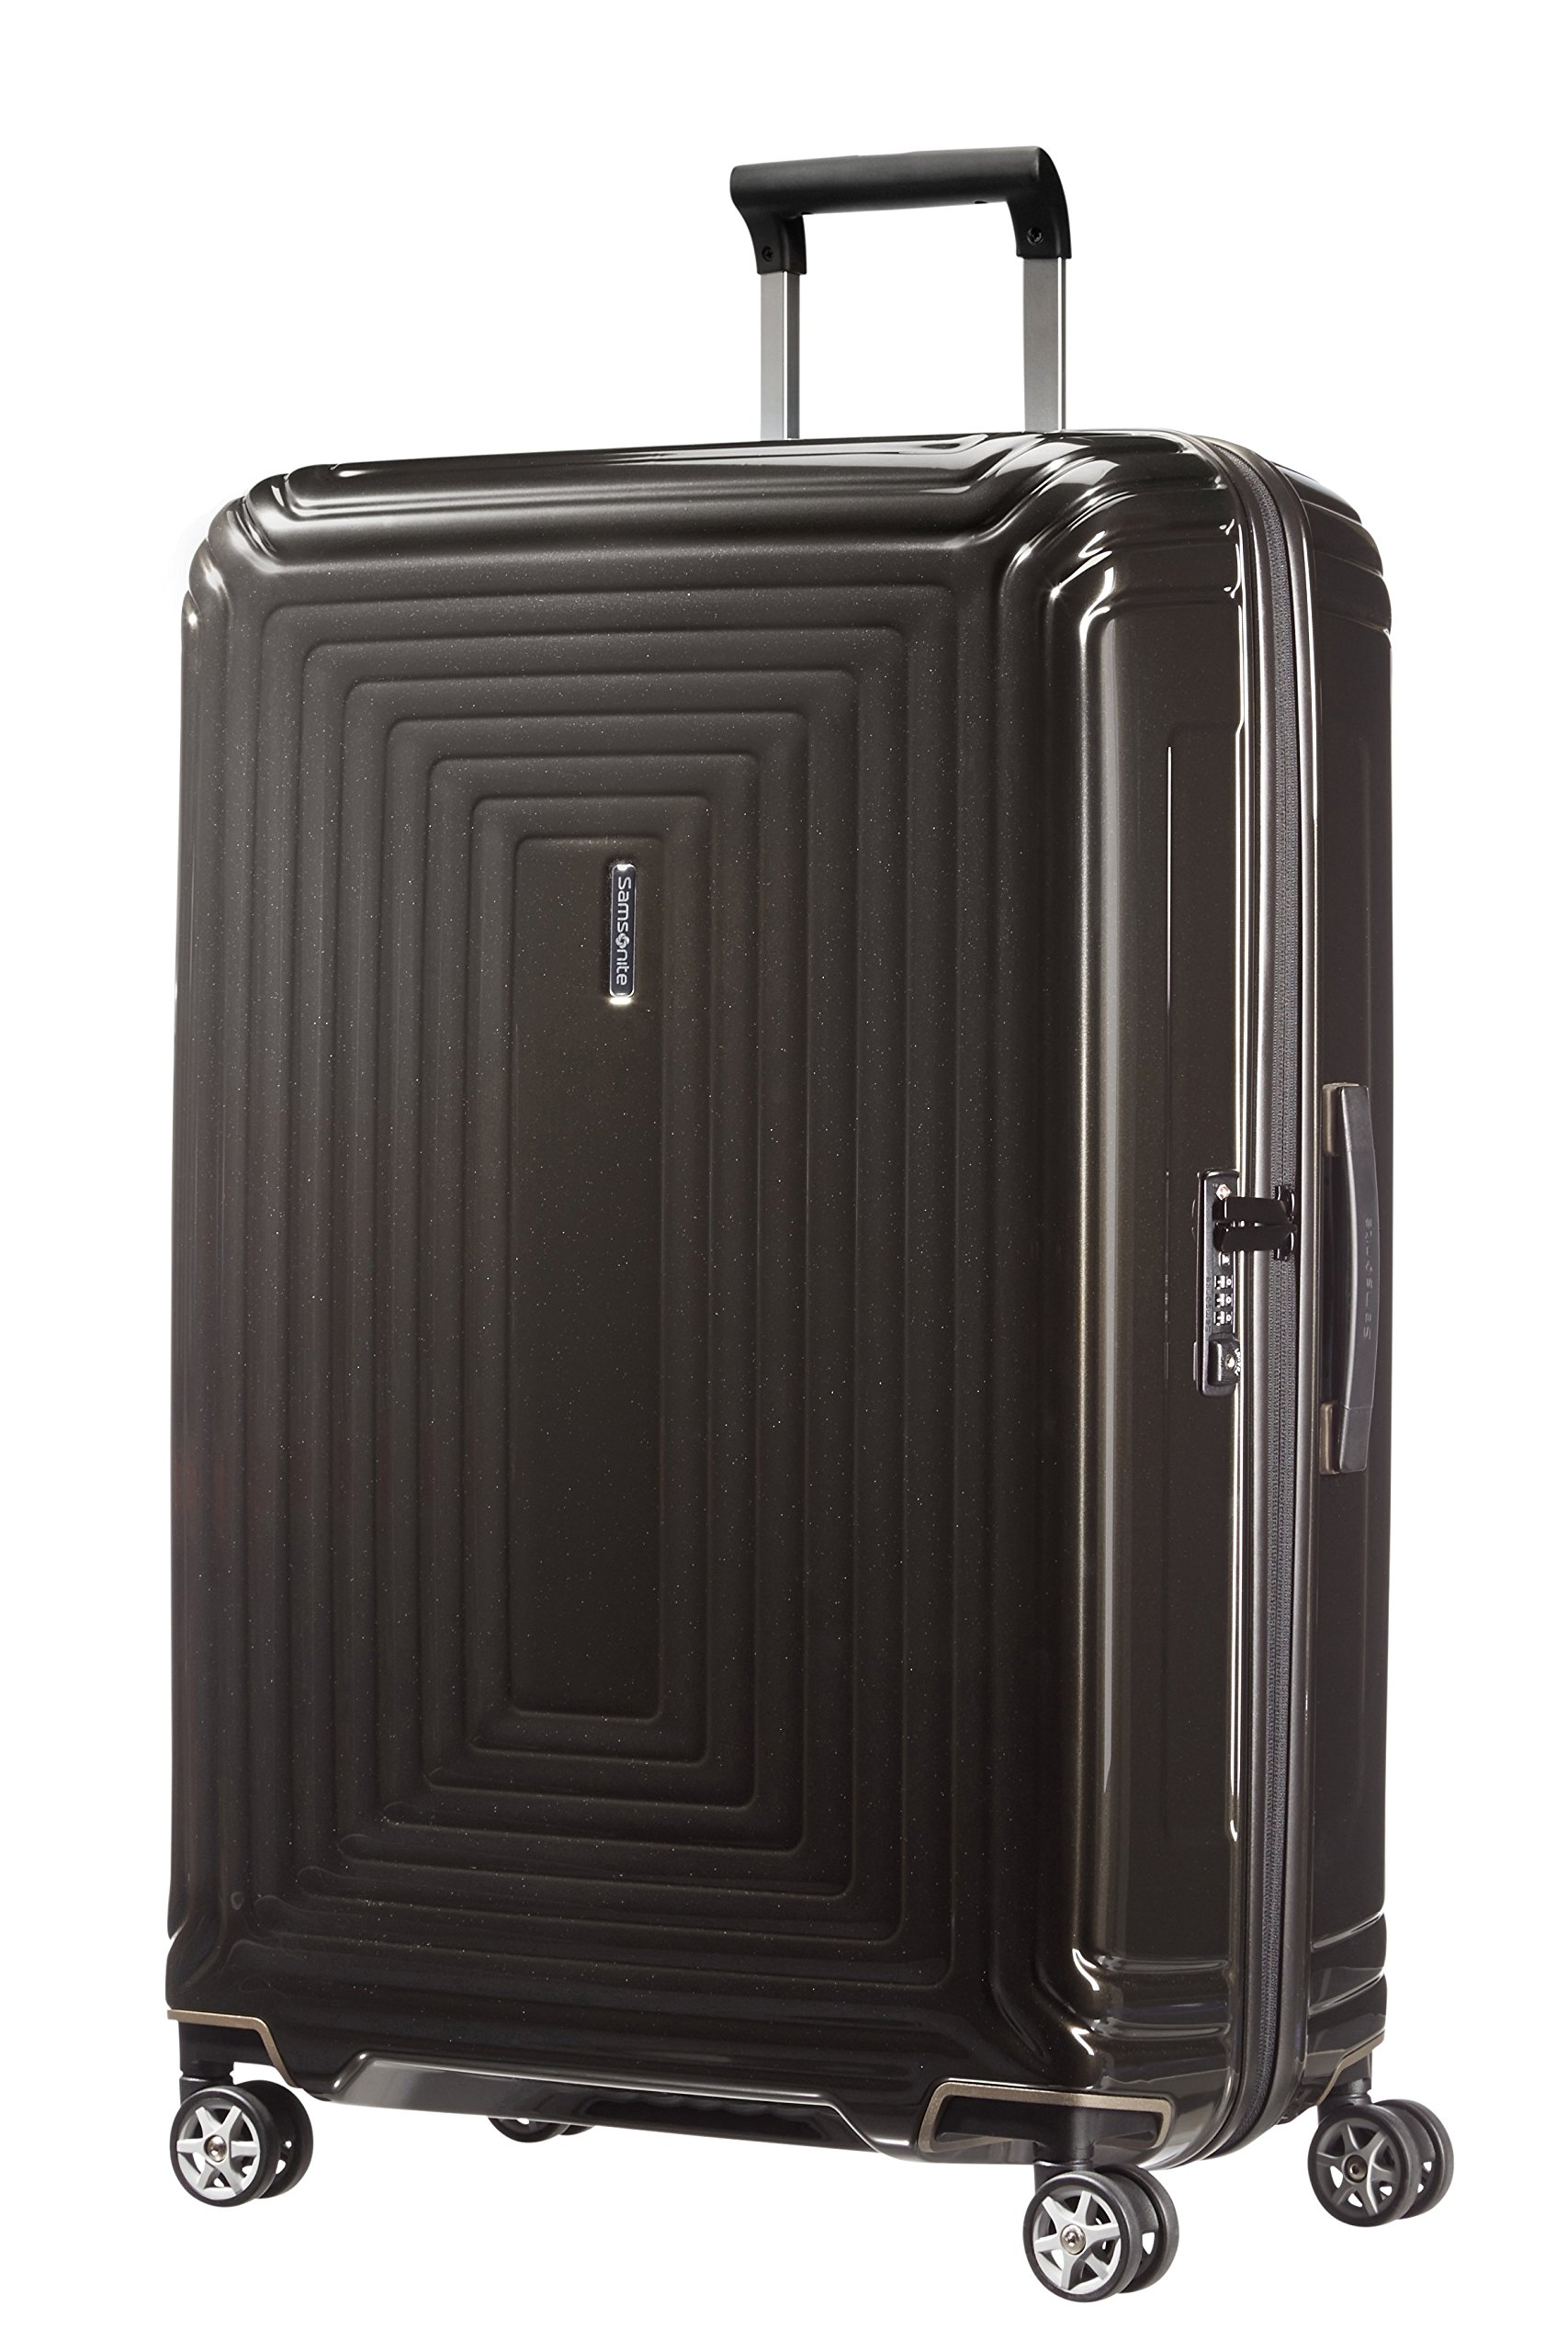 58a199b3dae54 Samsonite Neopulse Spinner Neopulse Black